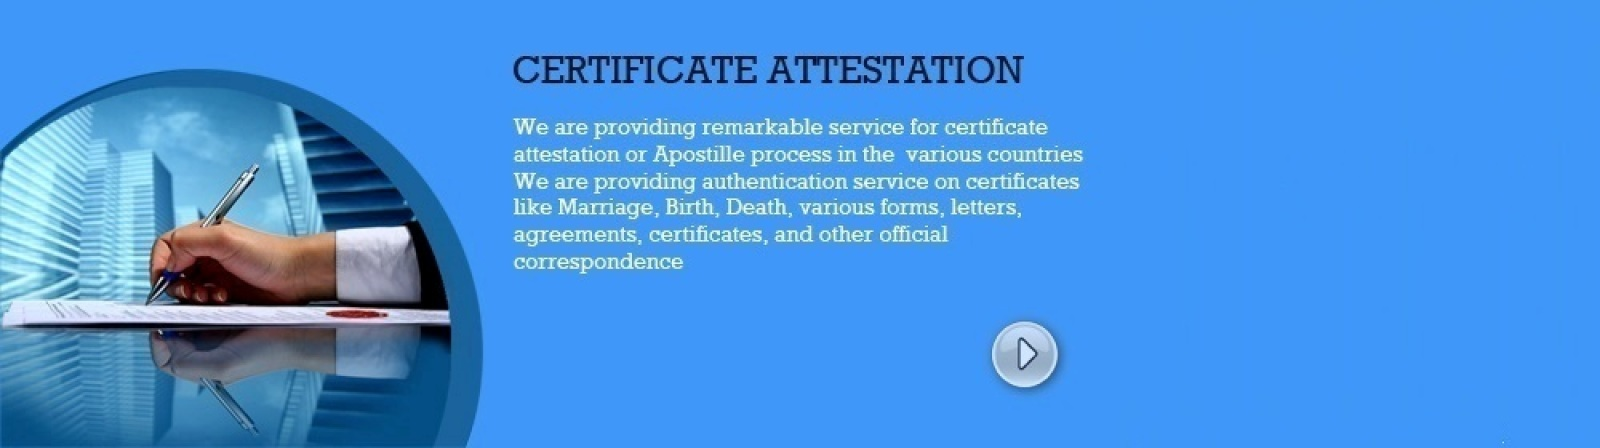 Certificate-Attestation.html